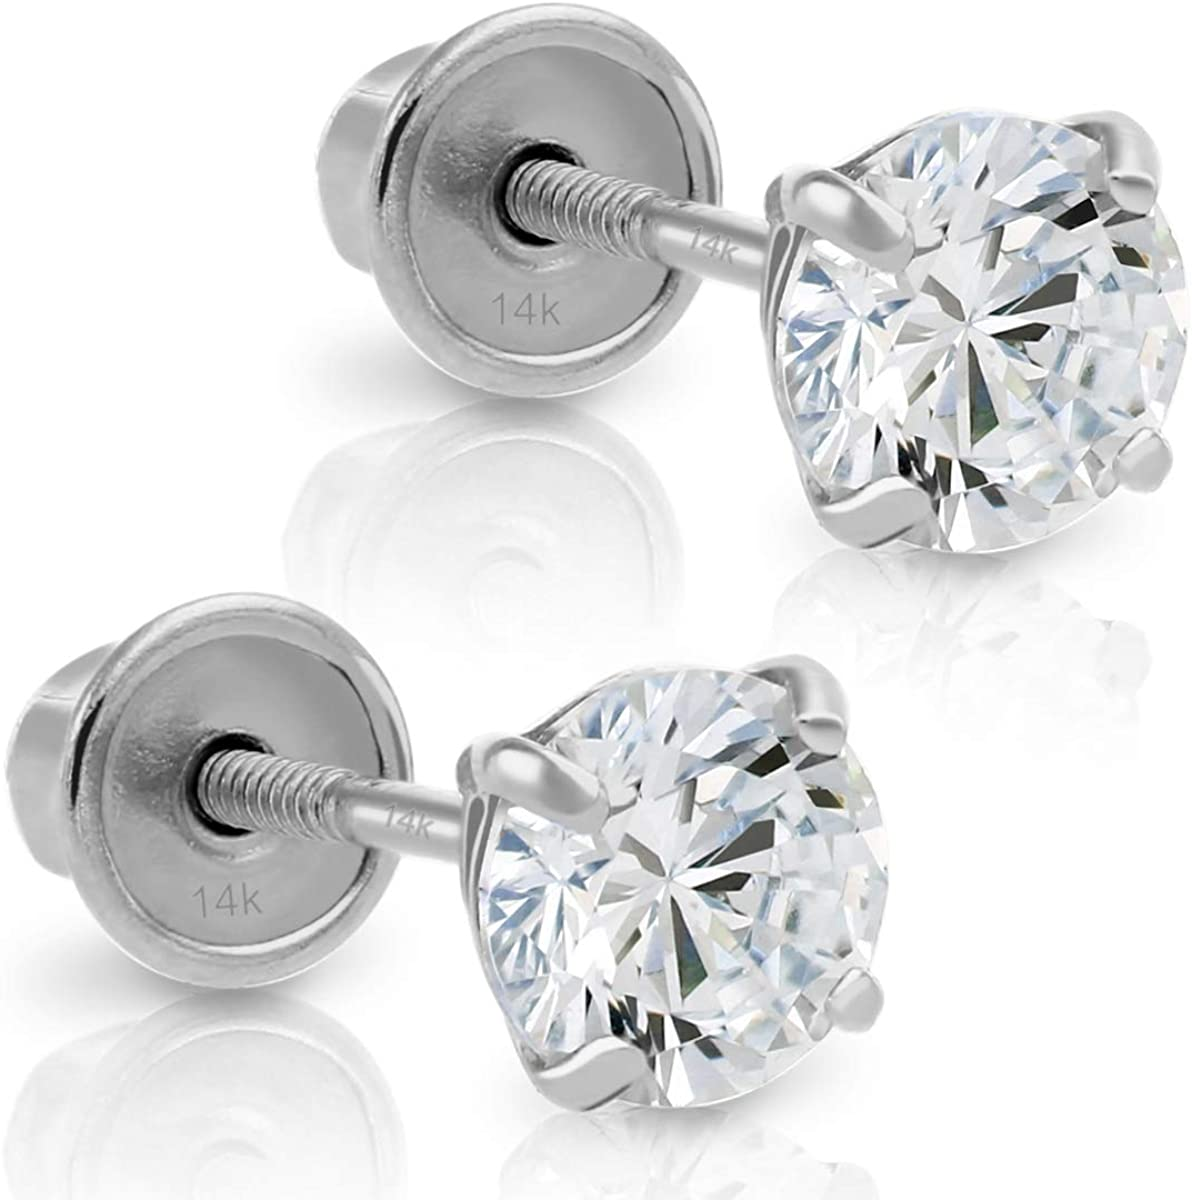 14k White Gold Made with SWAROVSKI Cubic Zirconia Solitaire Stud Earrings with Secure Screw-backs